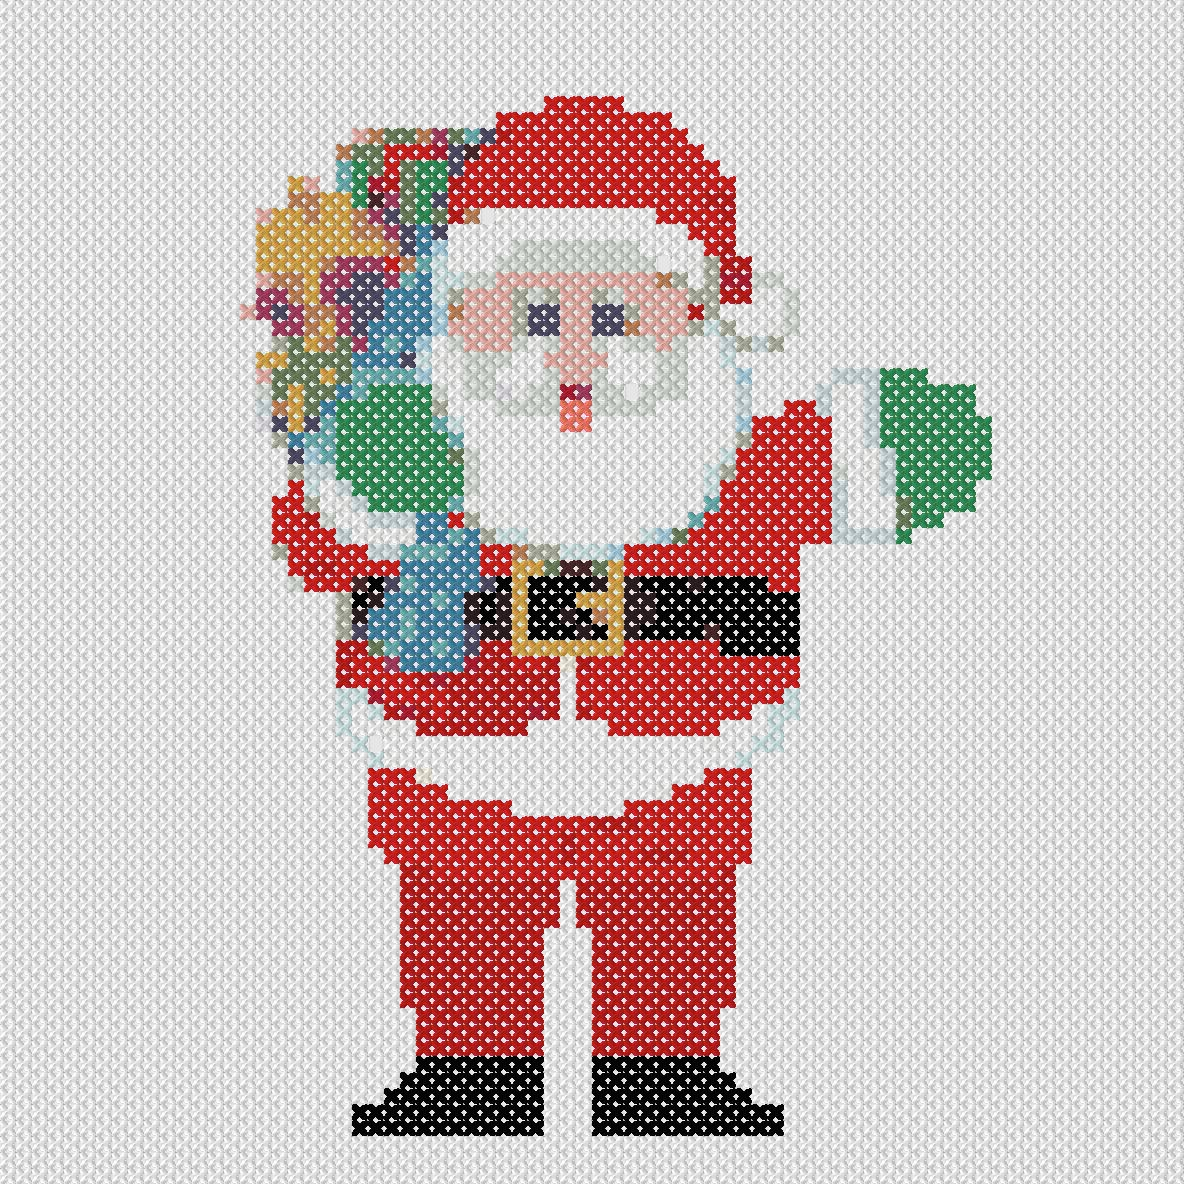 Embroidery Christmas Patterns Christmas Cross Stitch Pattern Santa Claus Embroidery And Arts